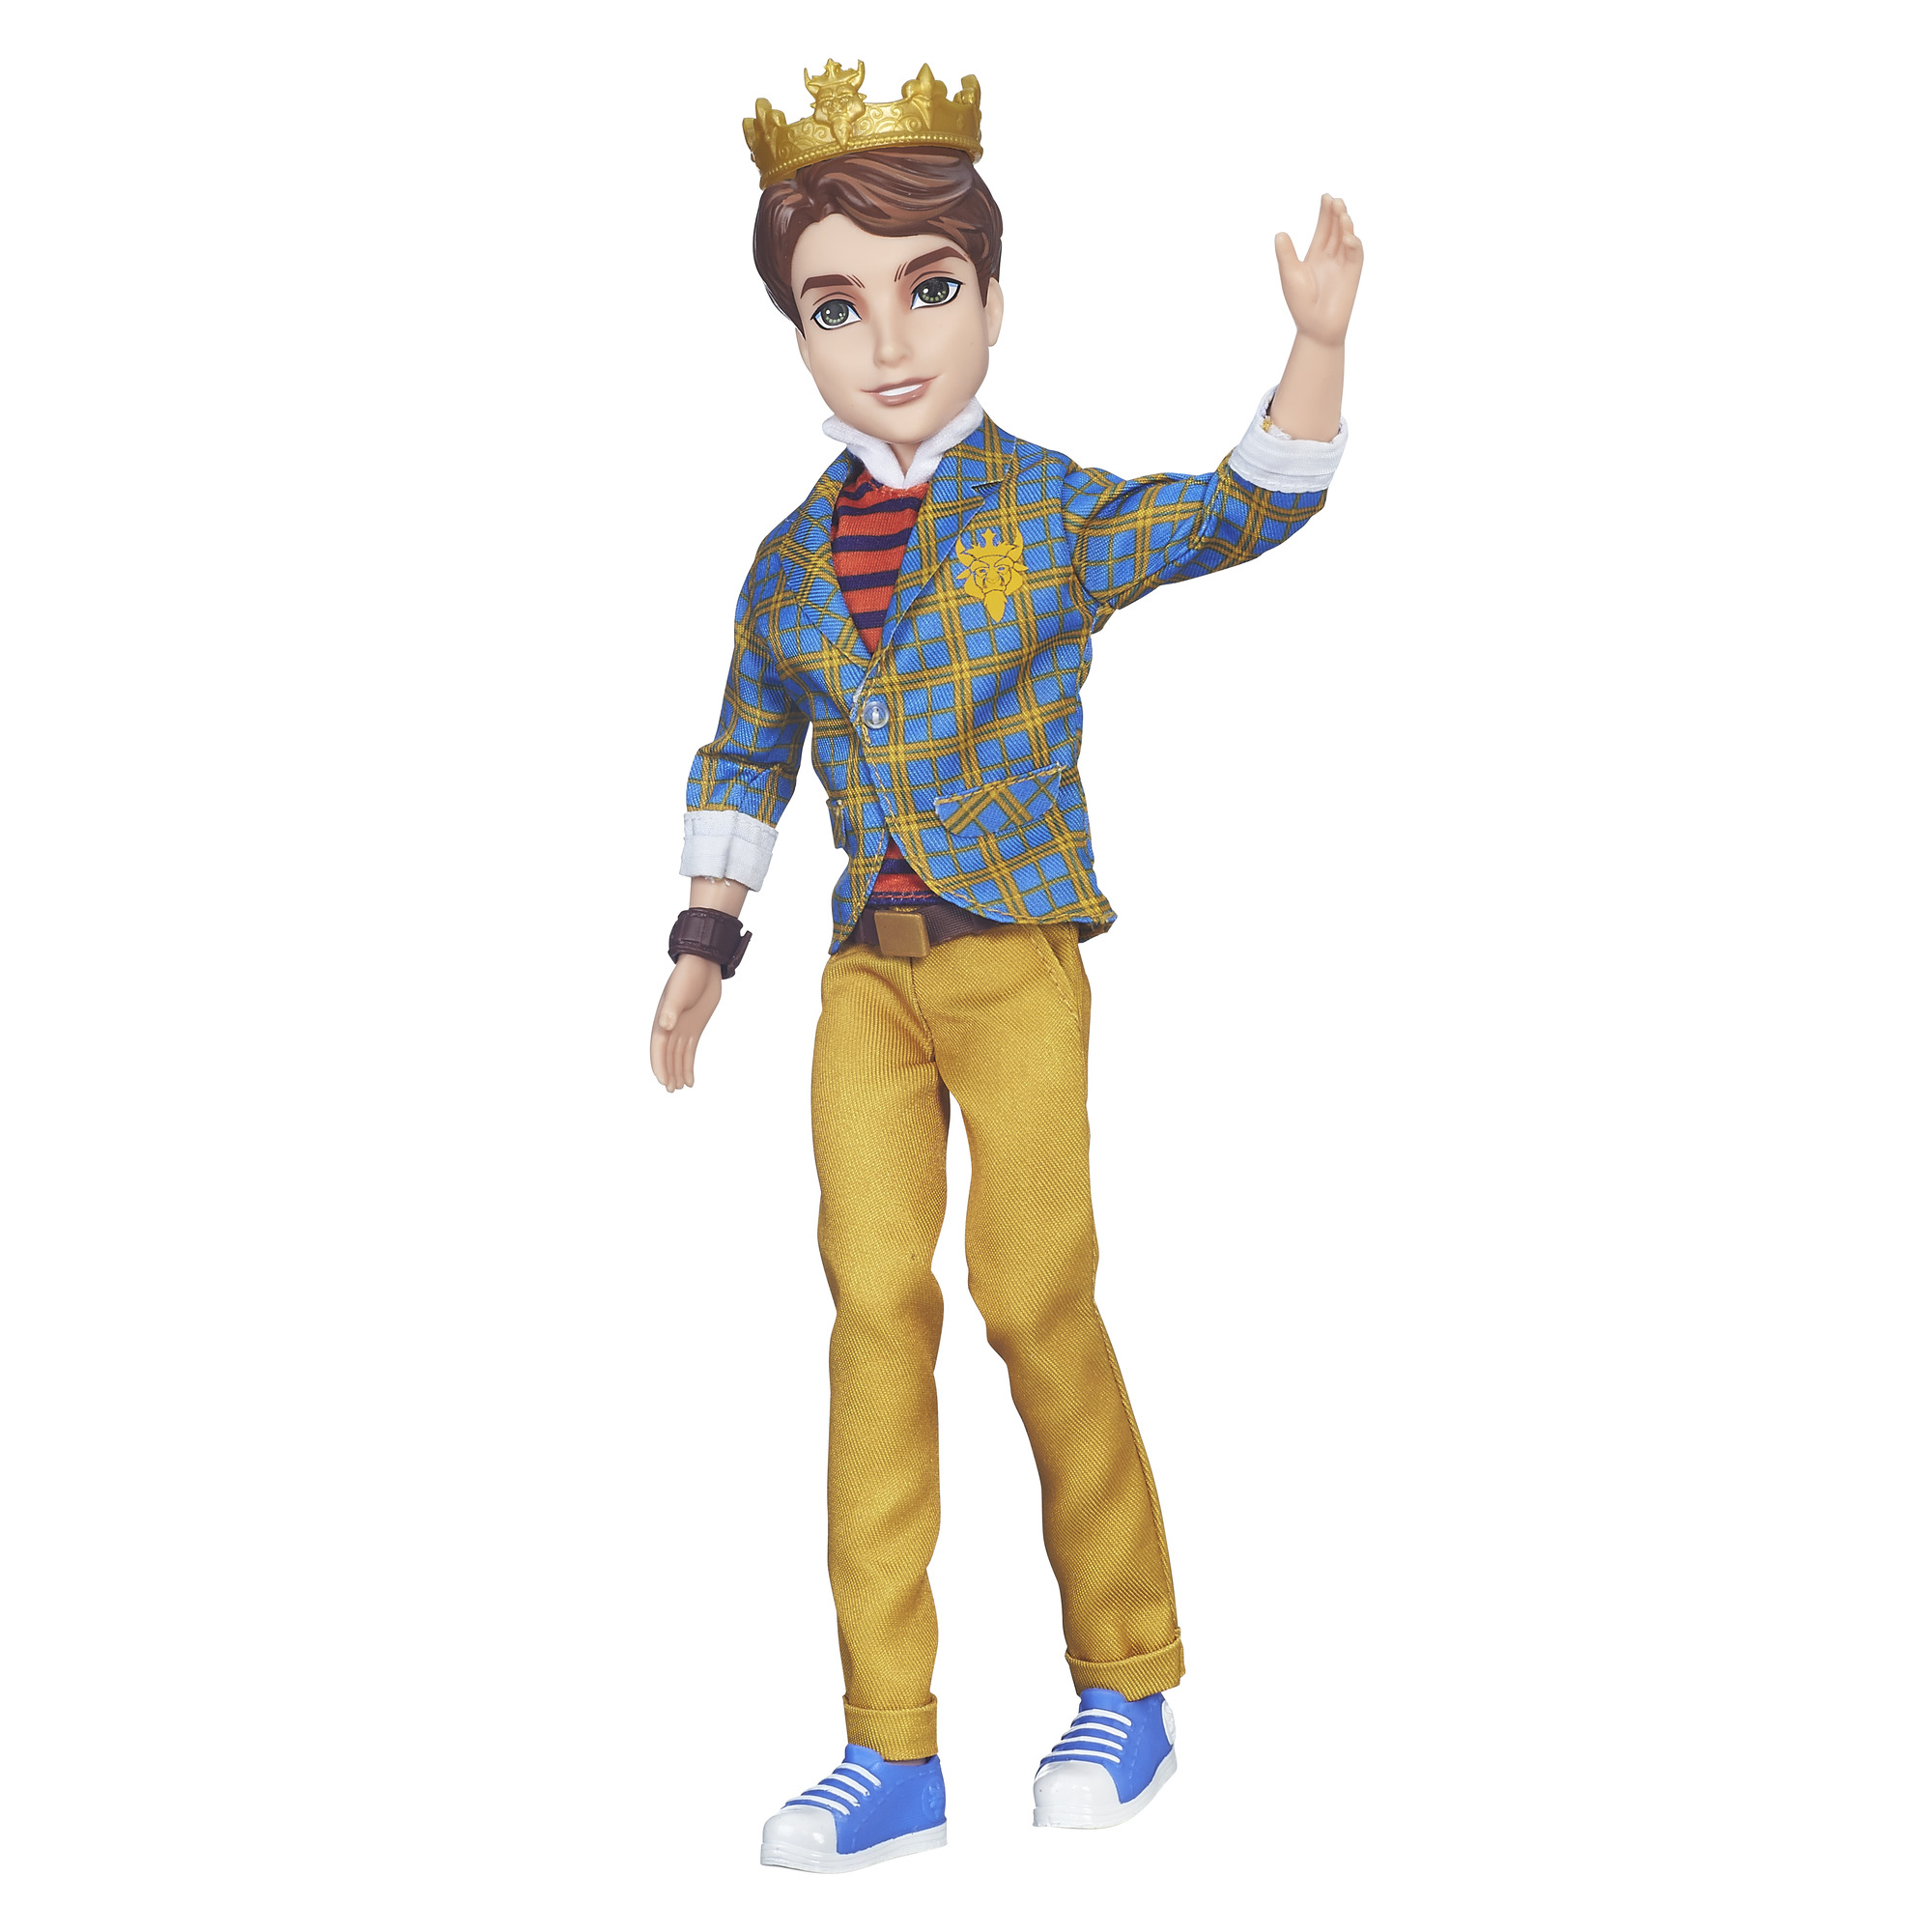 Disney Descendants Ben Auradon Prep by Hasbro